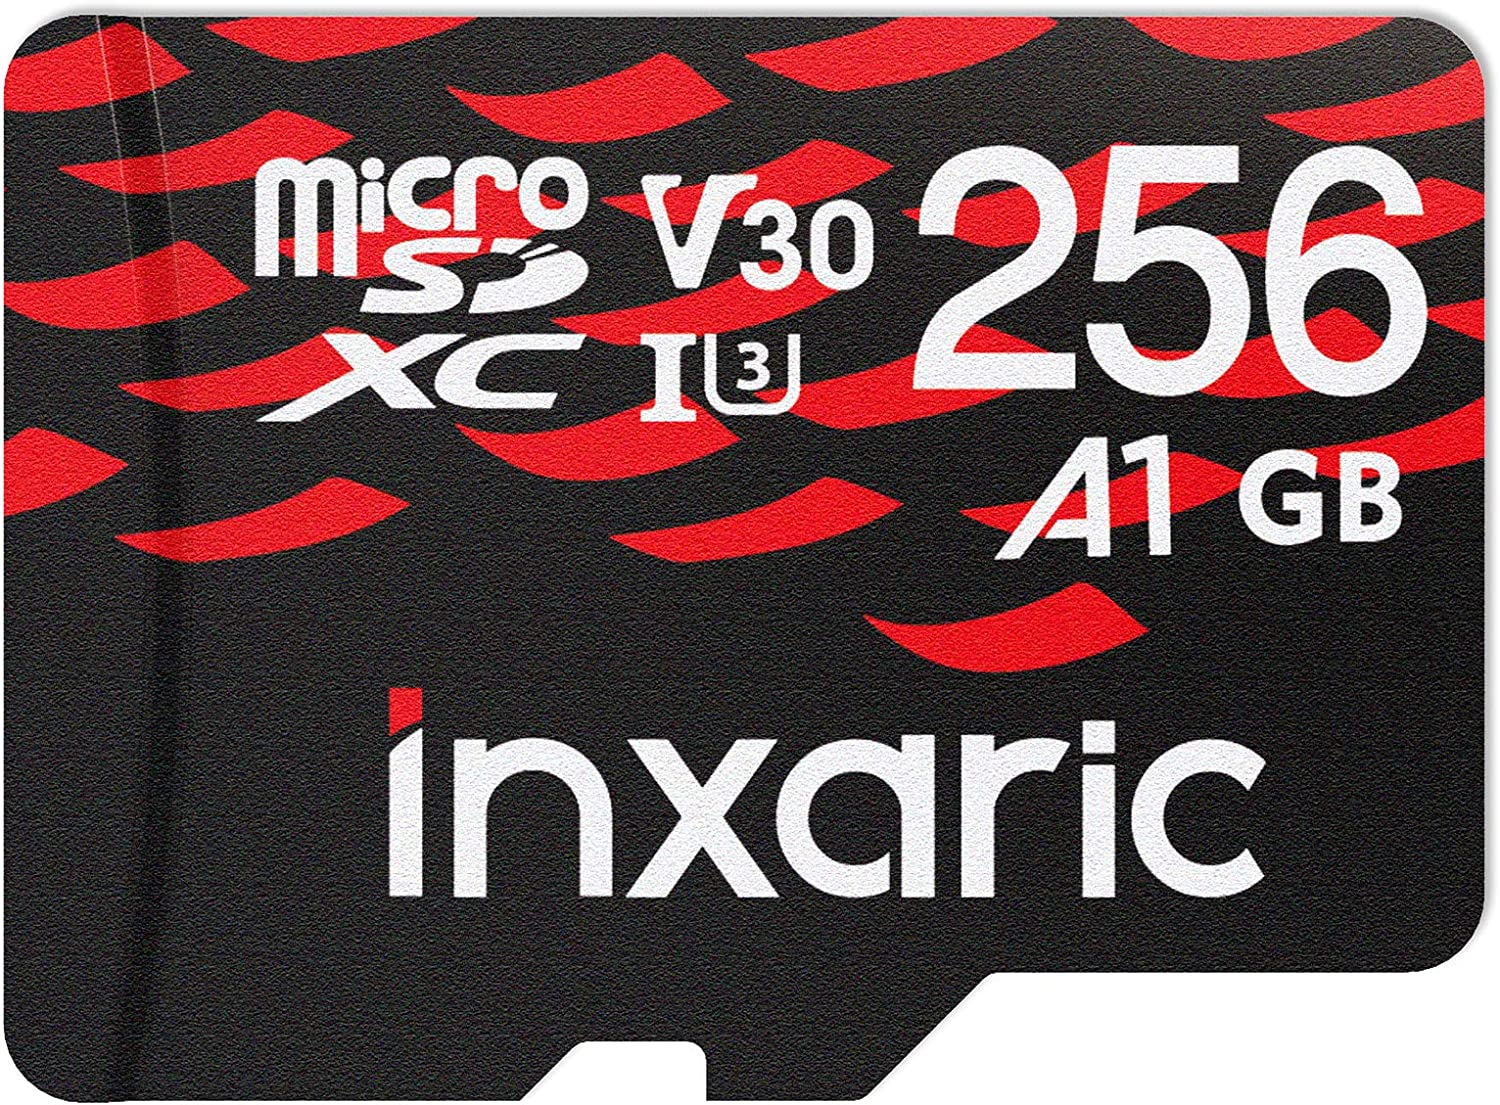 inxaric memory card for switch console